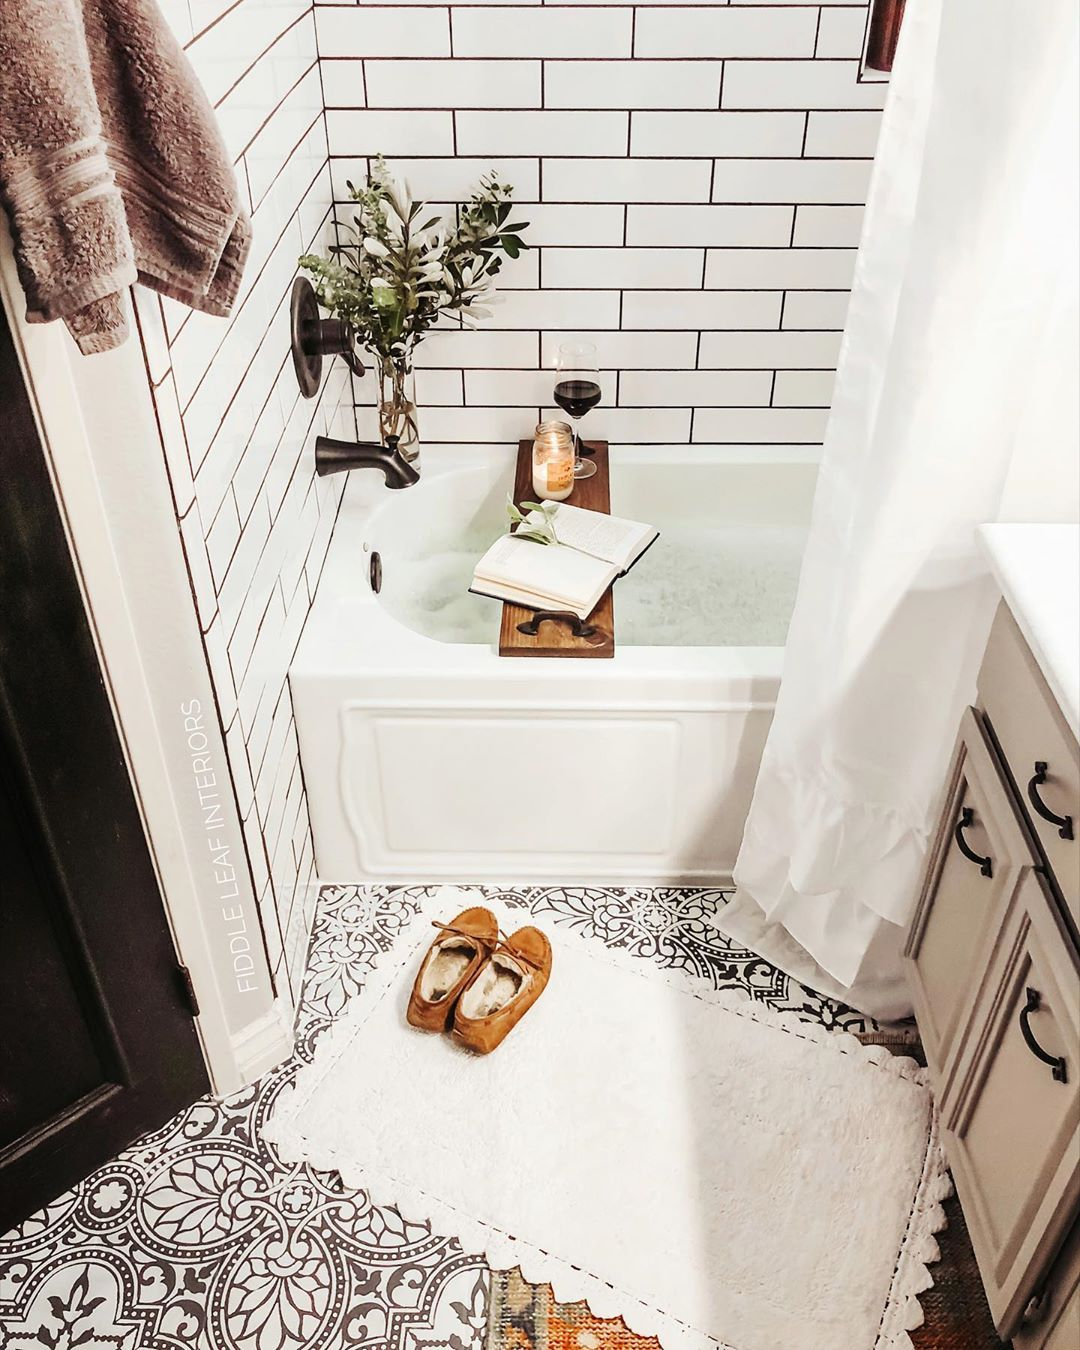 Ana Fiddle Leaf Interiors On Instagram Are You Making Time For Yourself This Long Weekend In 2020 Small Master Bathroom Bathroom Layout Master Bathroom